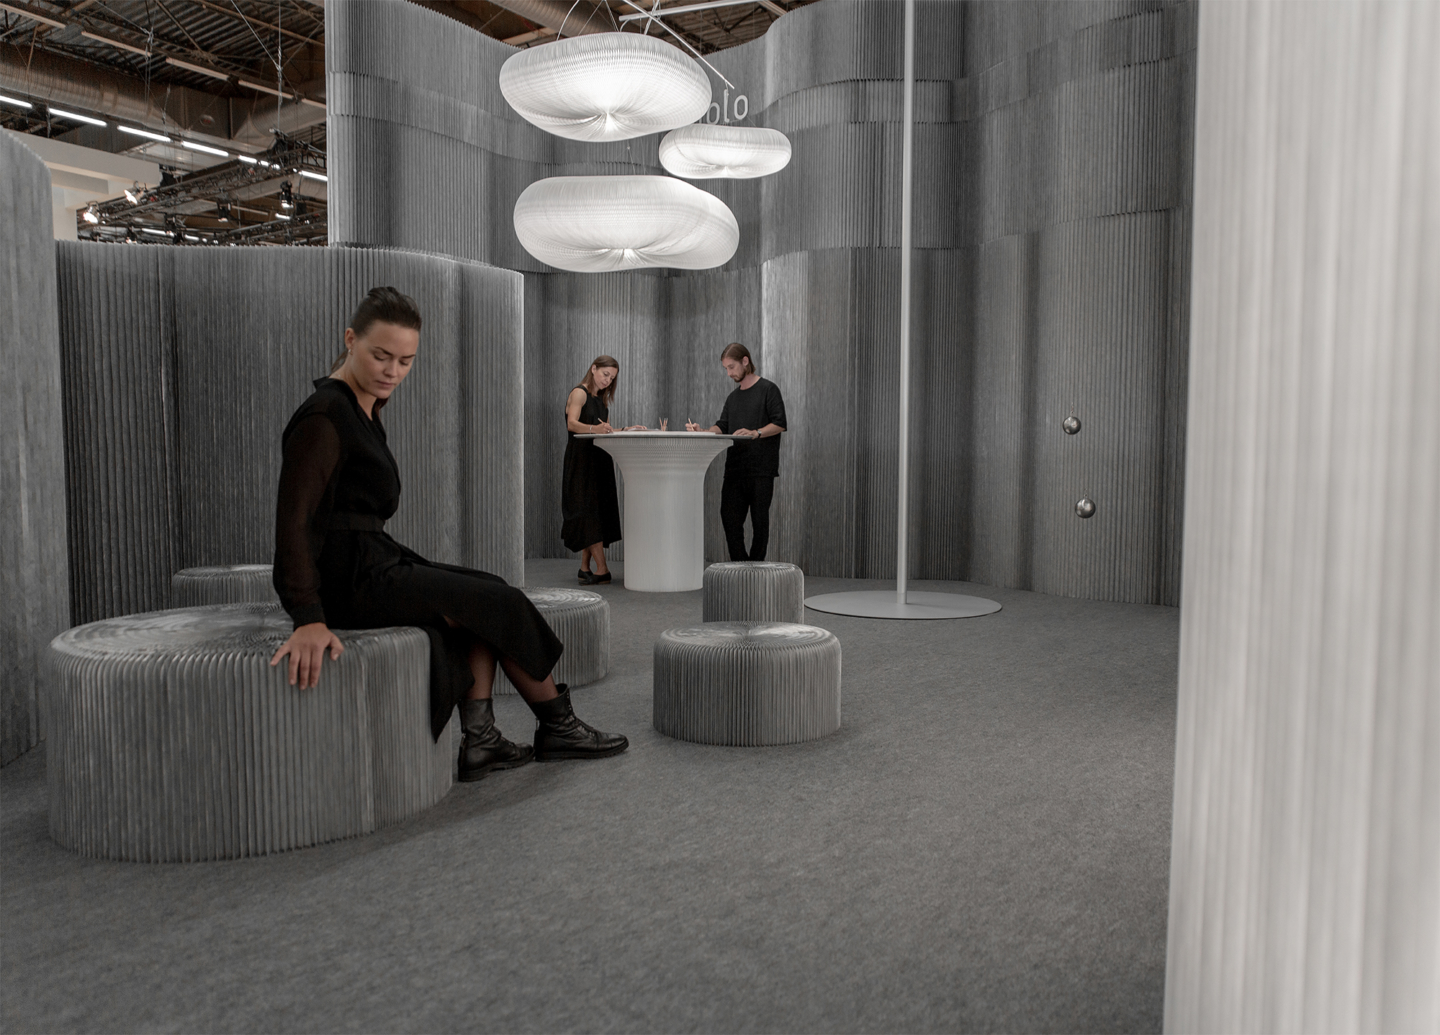 flexible room divider and lounge seating for office spaces